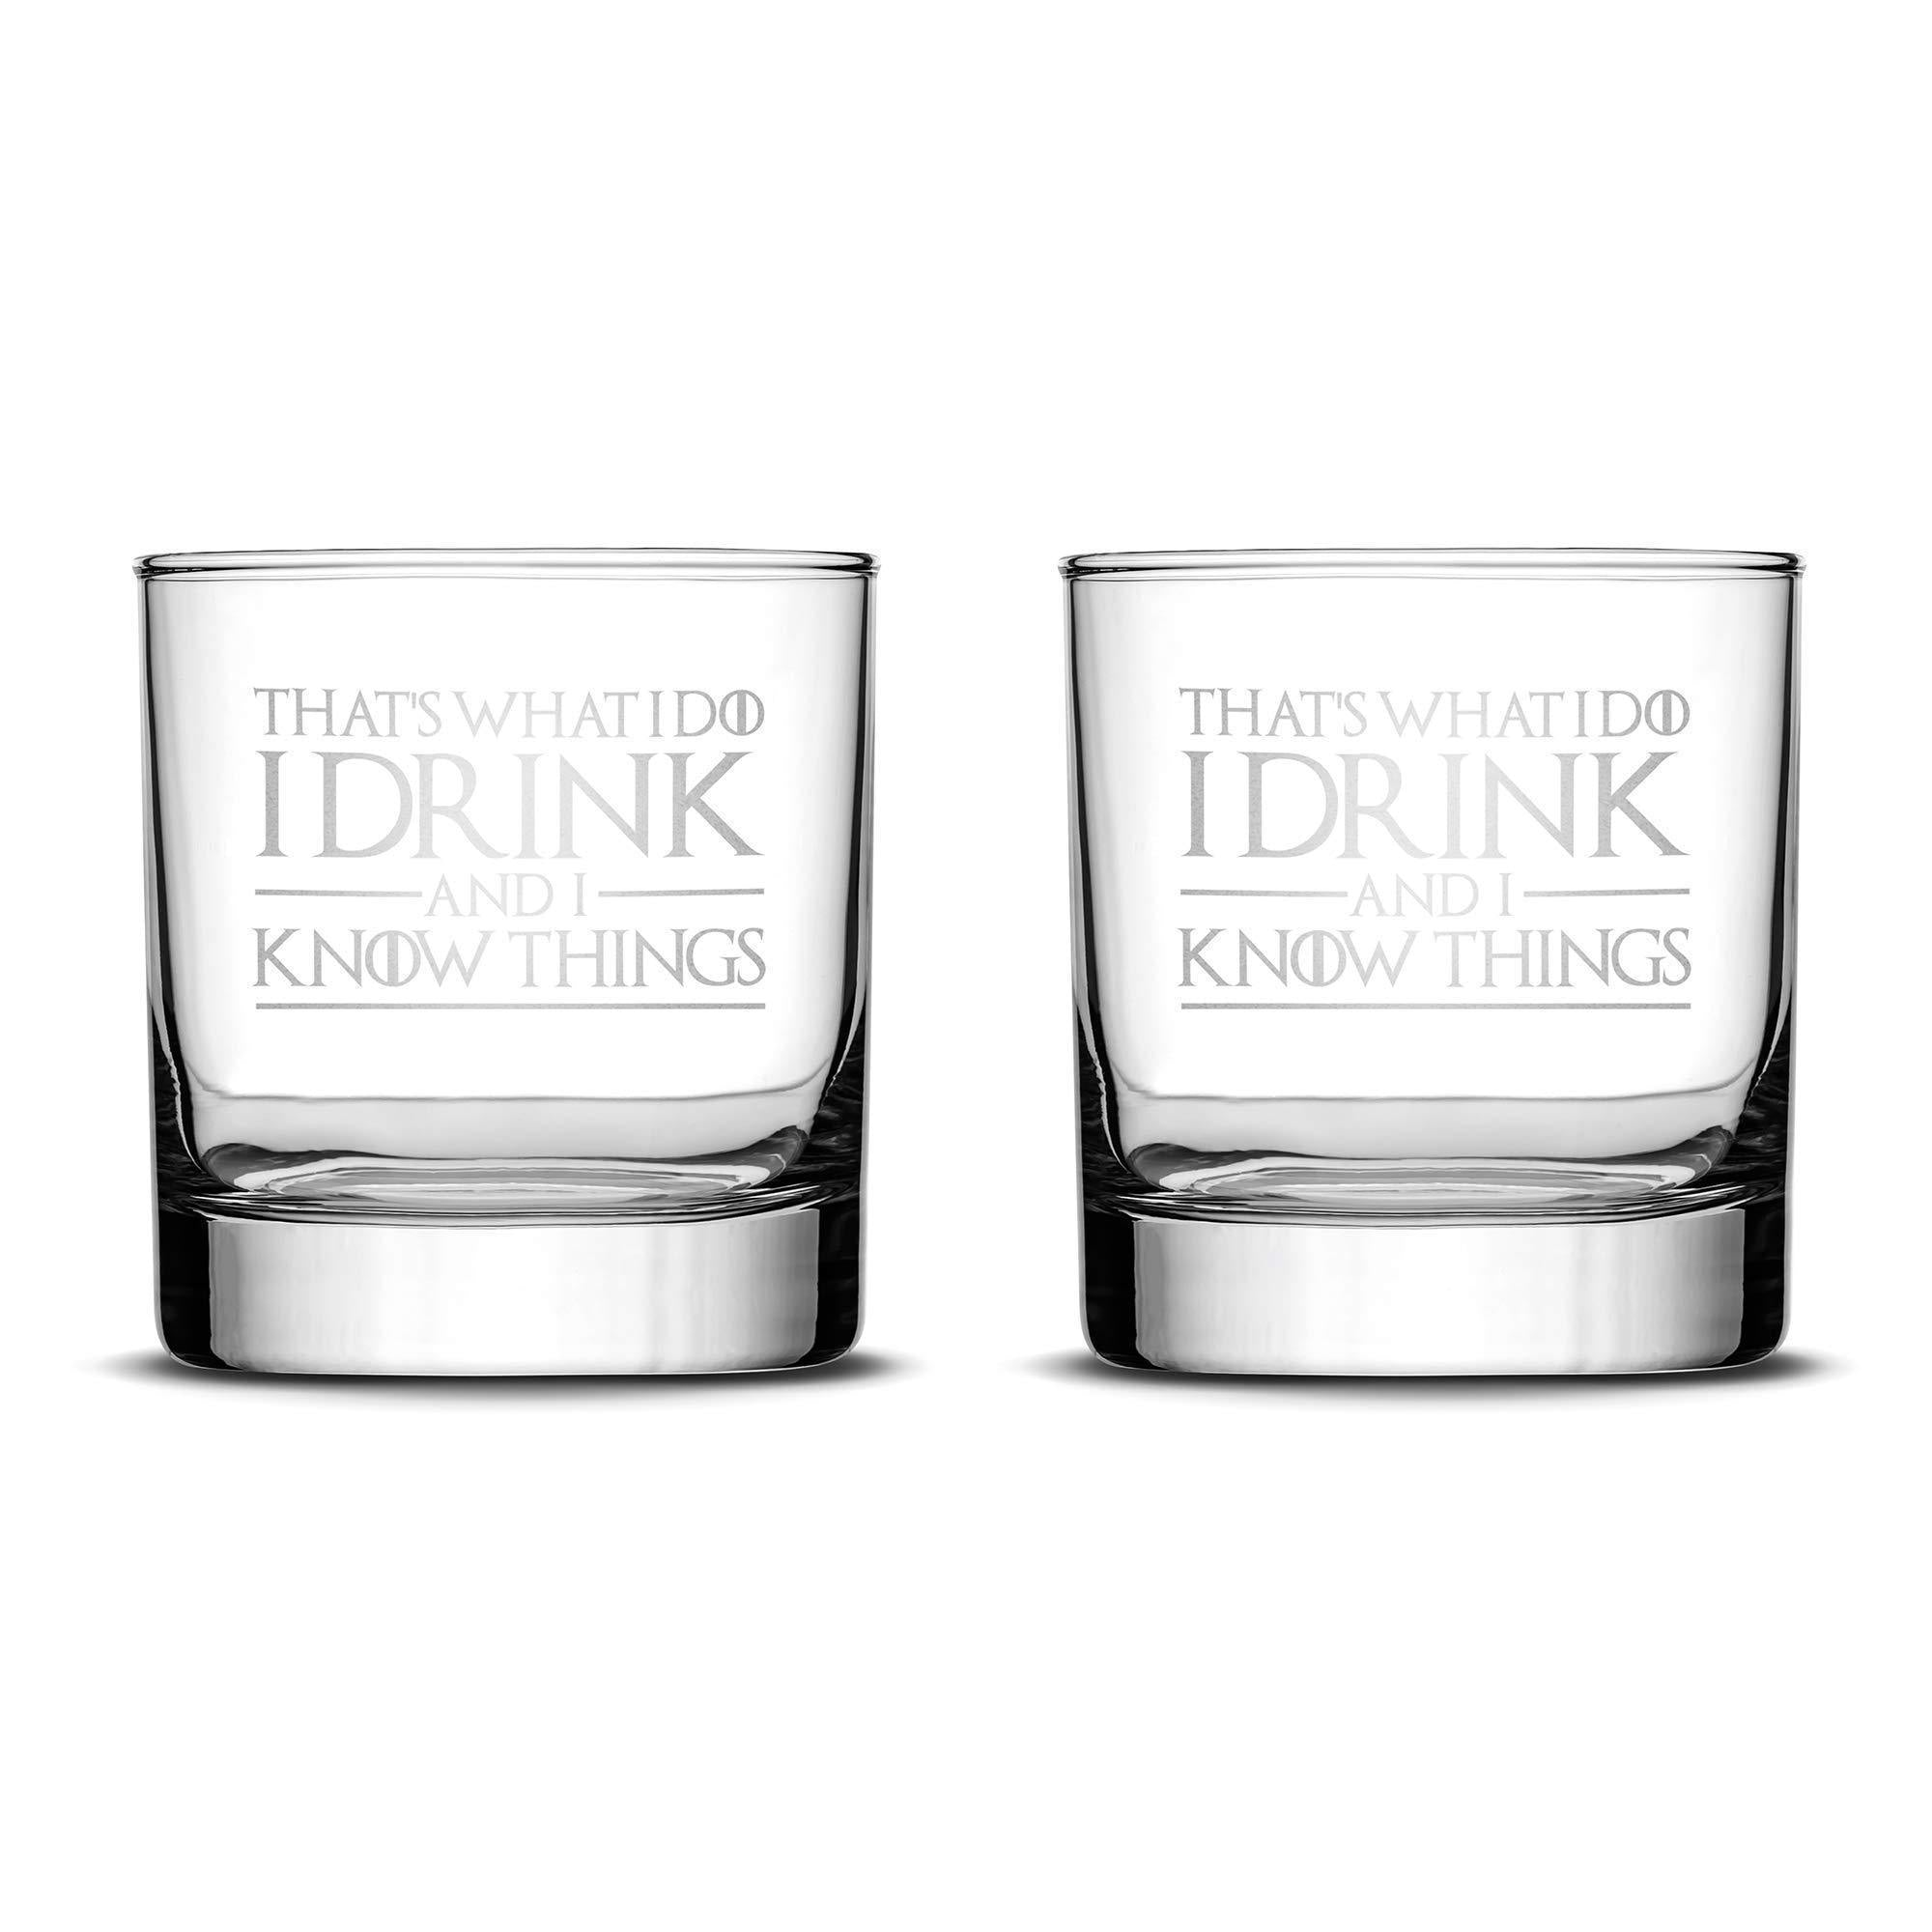 Premium Game of Thrones Whiskey Glasses, Set of 2, Thats What I Do I Drink and I Know Things Integrity Bottles